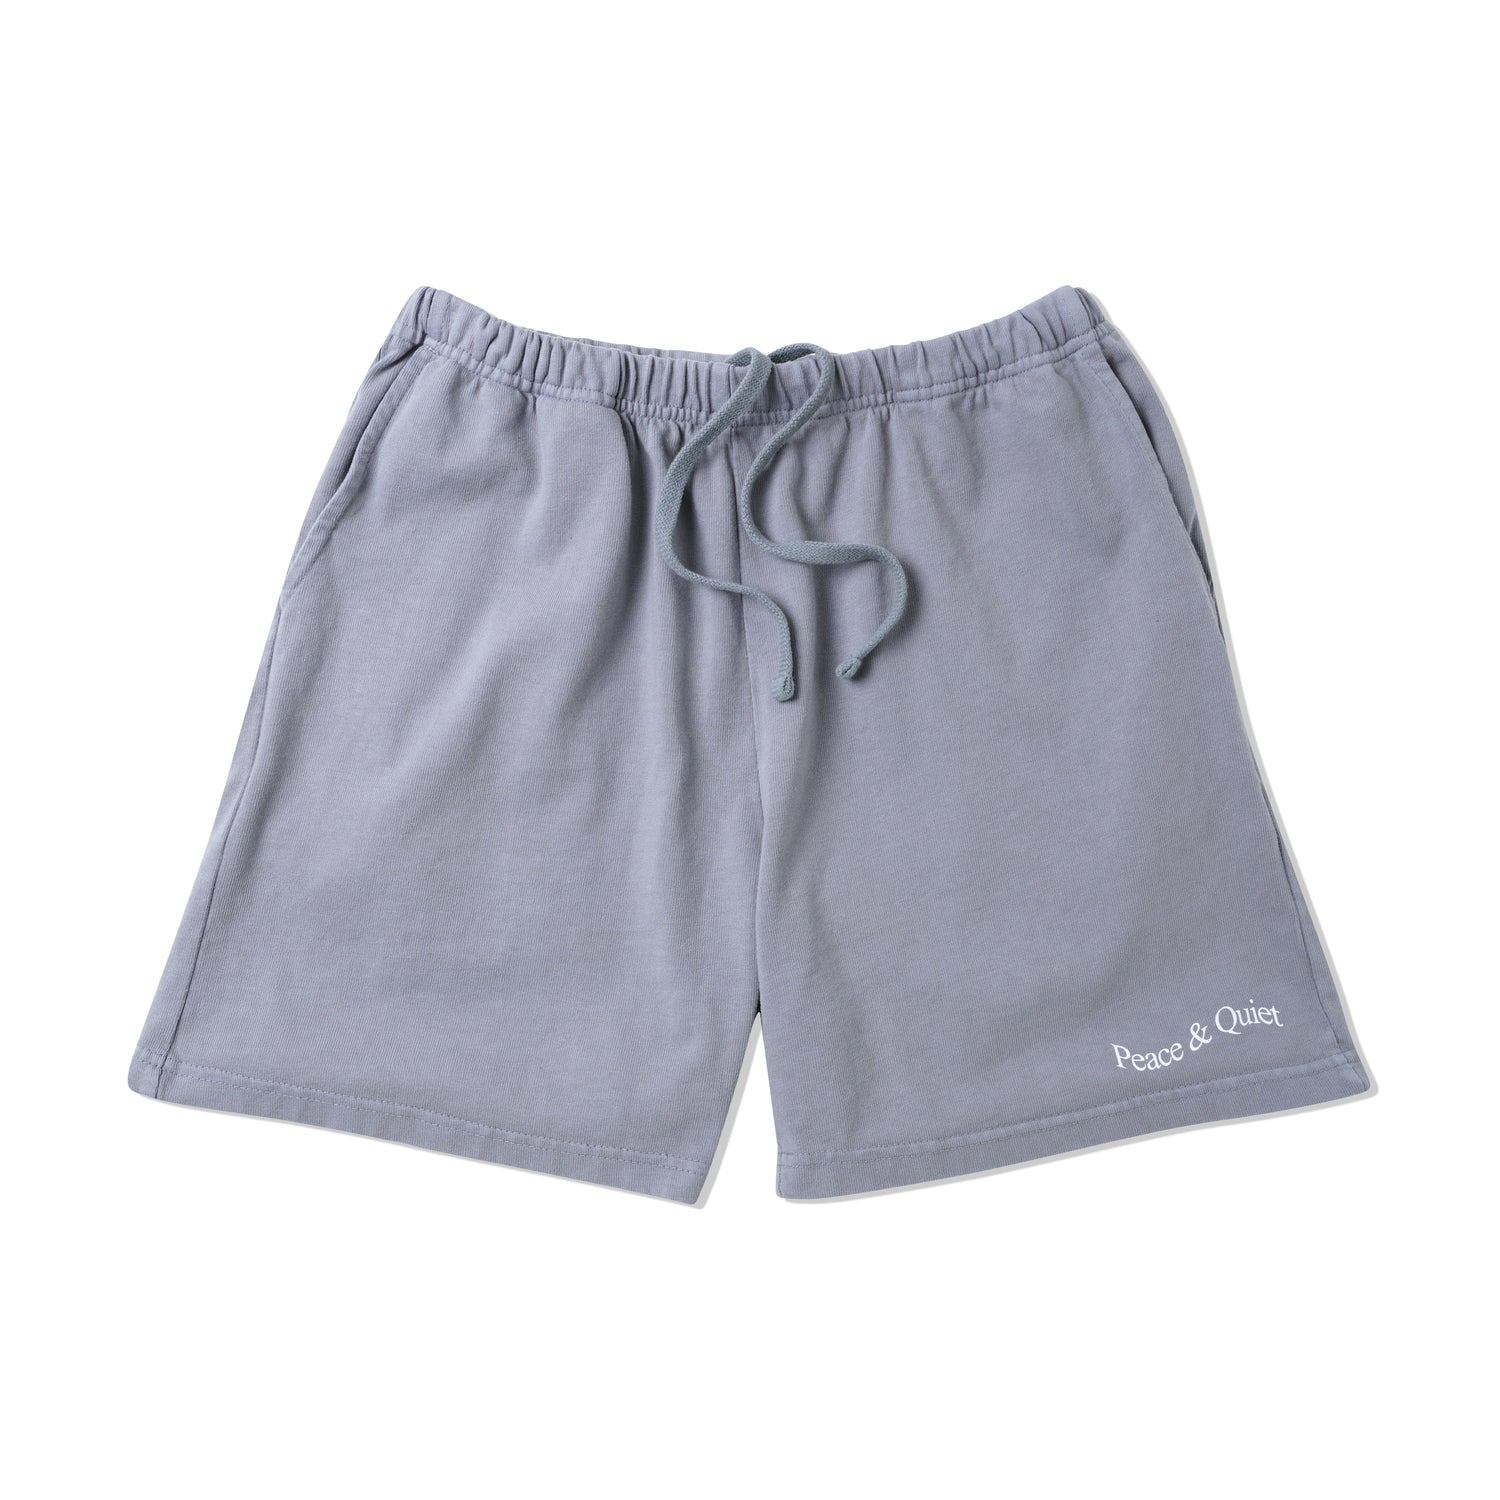 Stinger Shorts, Black